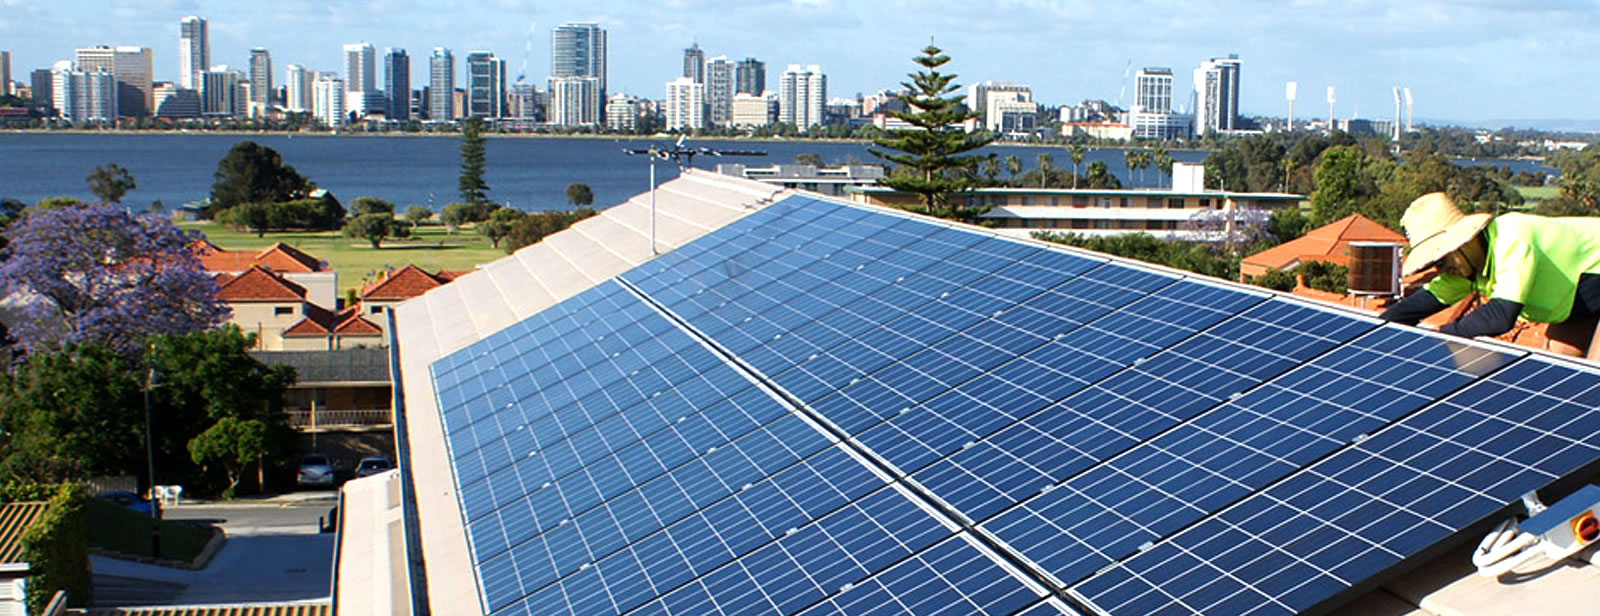 The Bright Potential of Solar Power in Australia